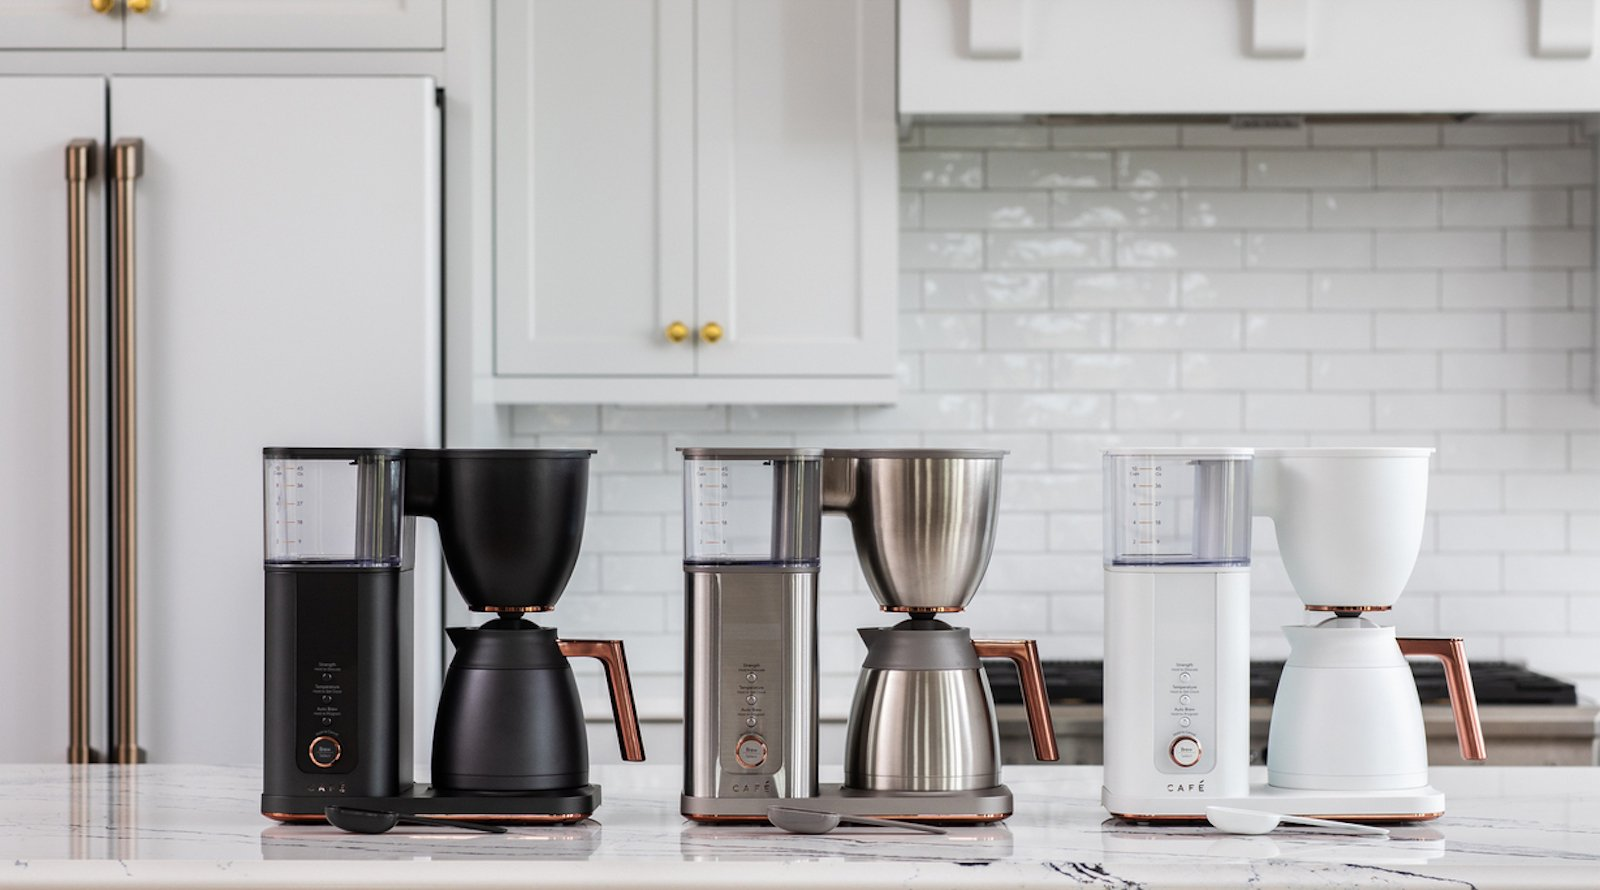 Café Appliances Specialty Drip Smart Coffee Maker has built-in Wi-Fi for voice control